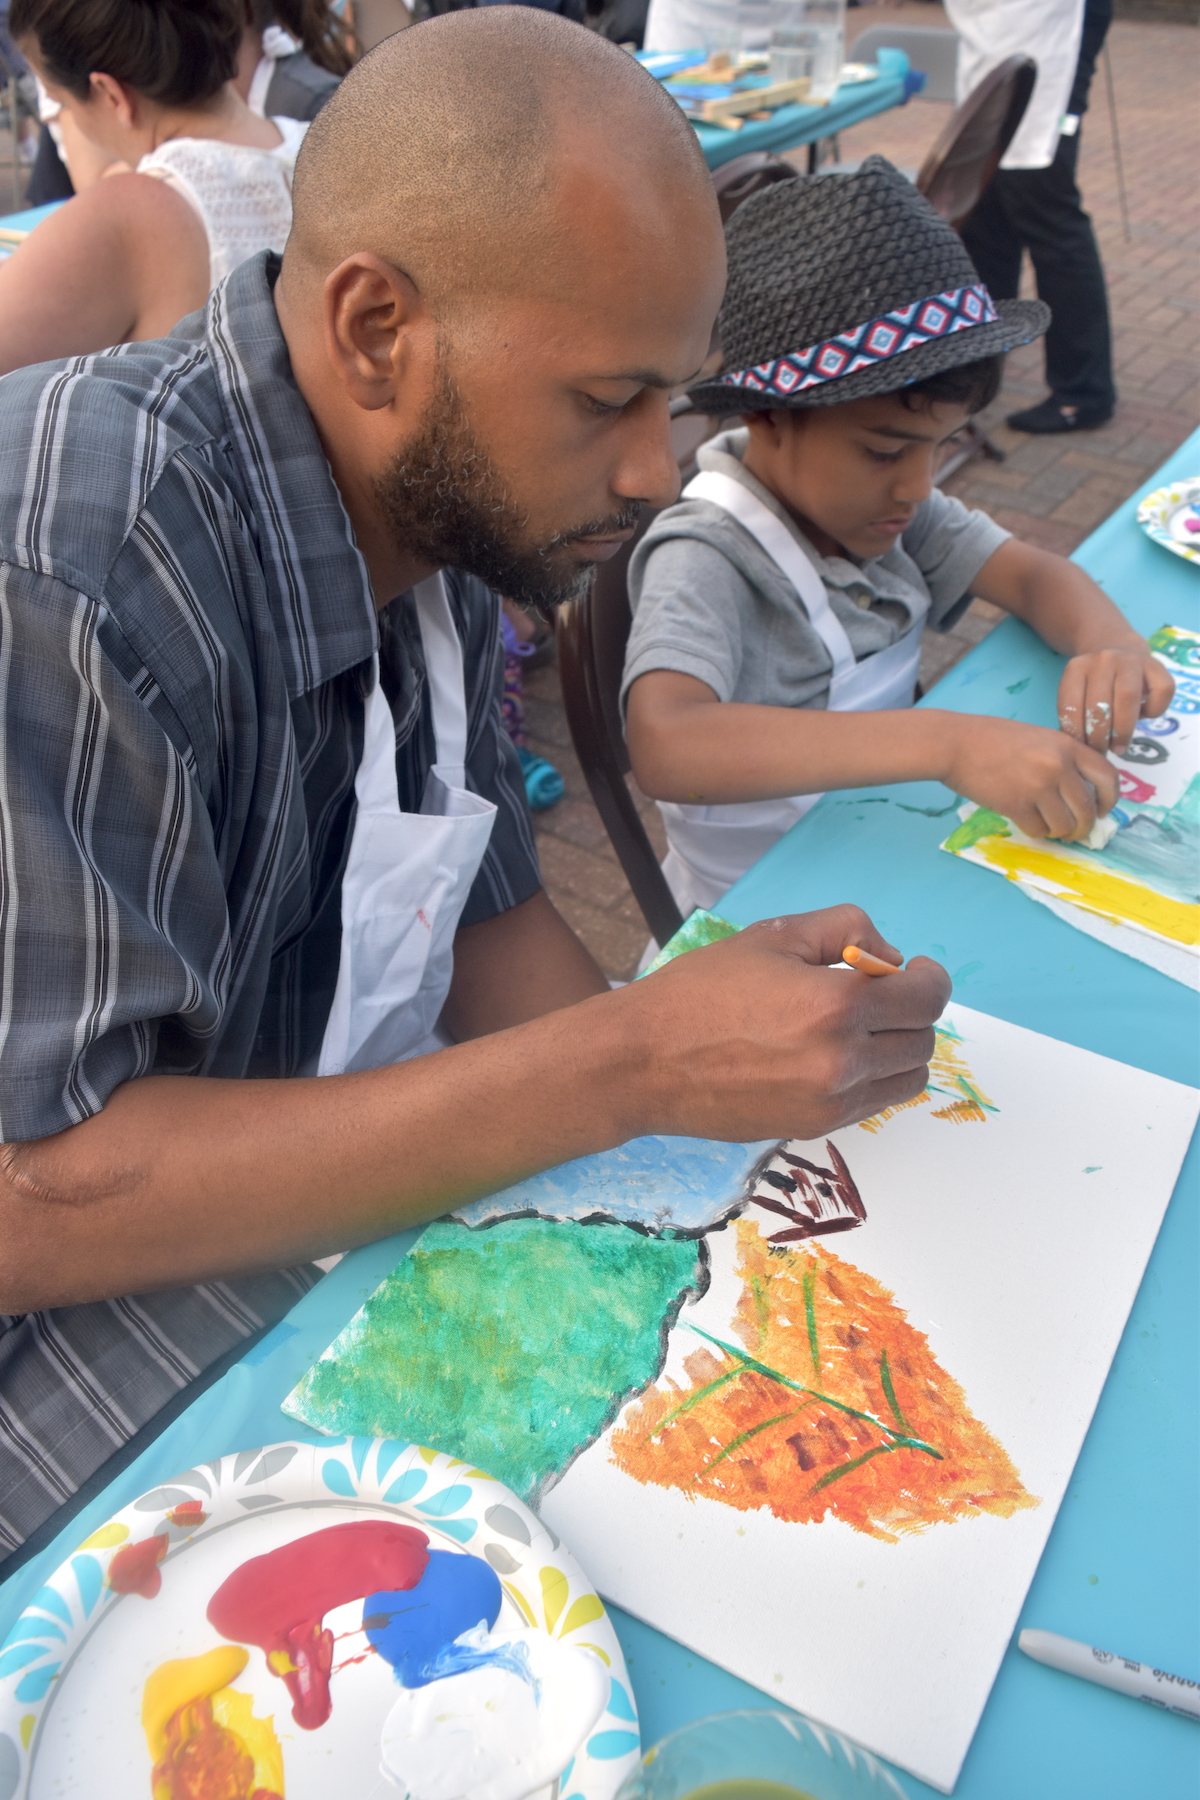 June 29 Event to Feature Outdoor Painting Class and